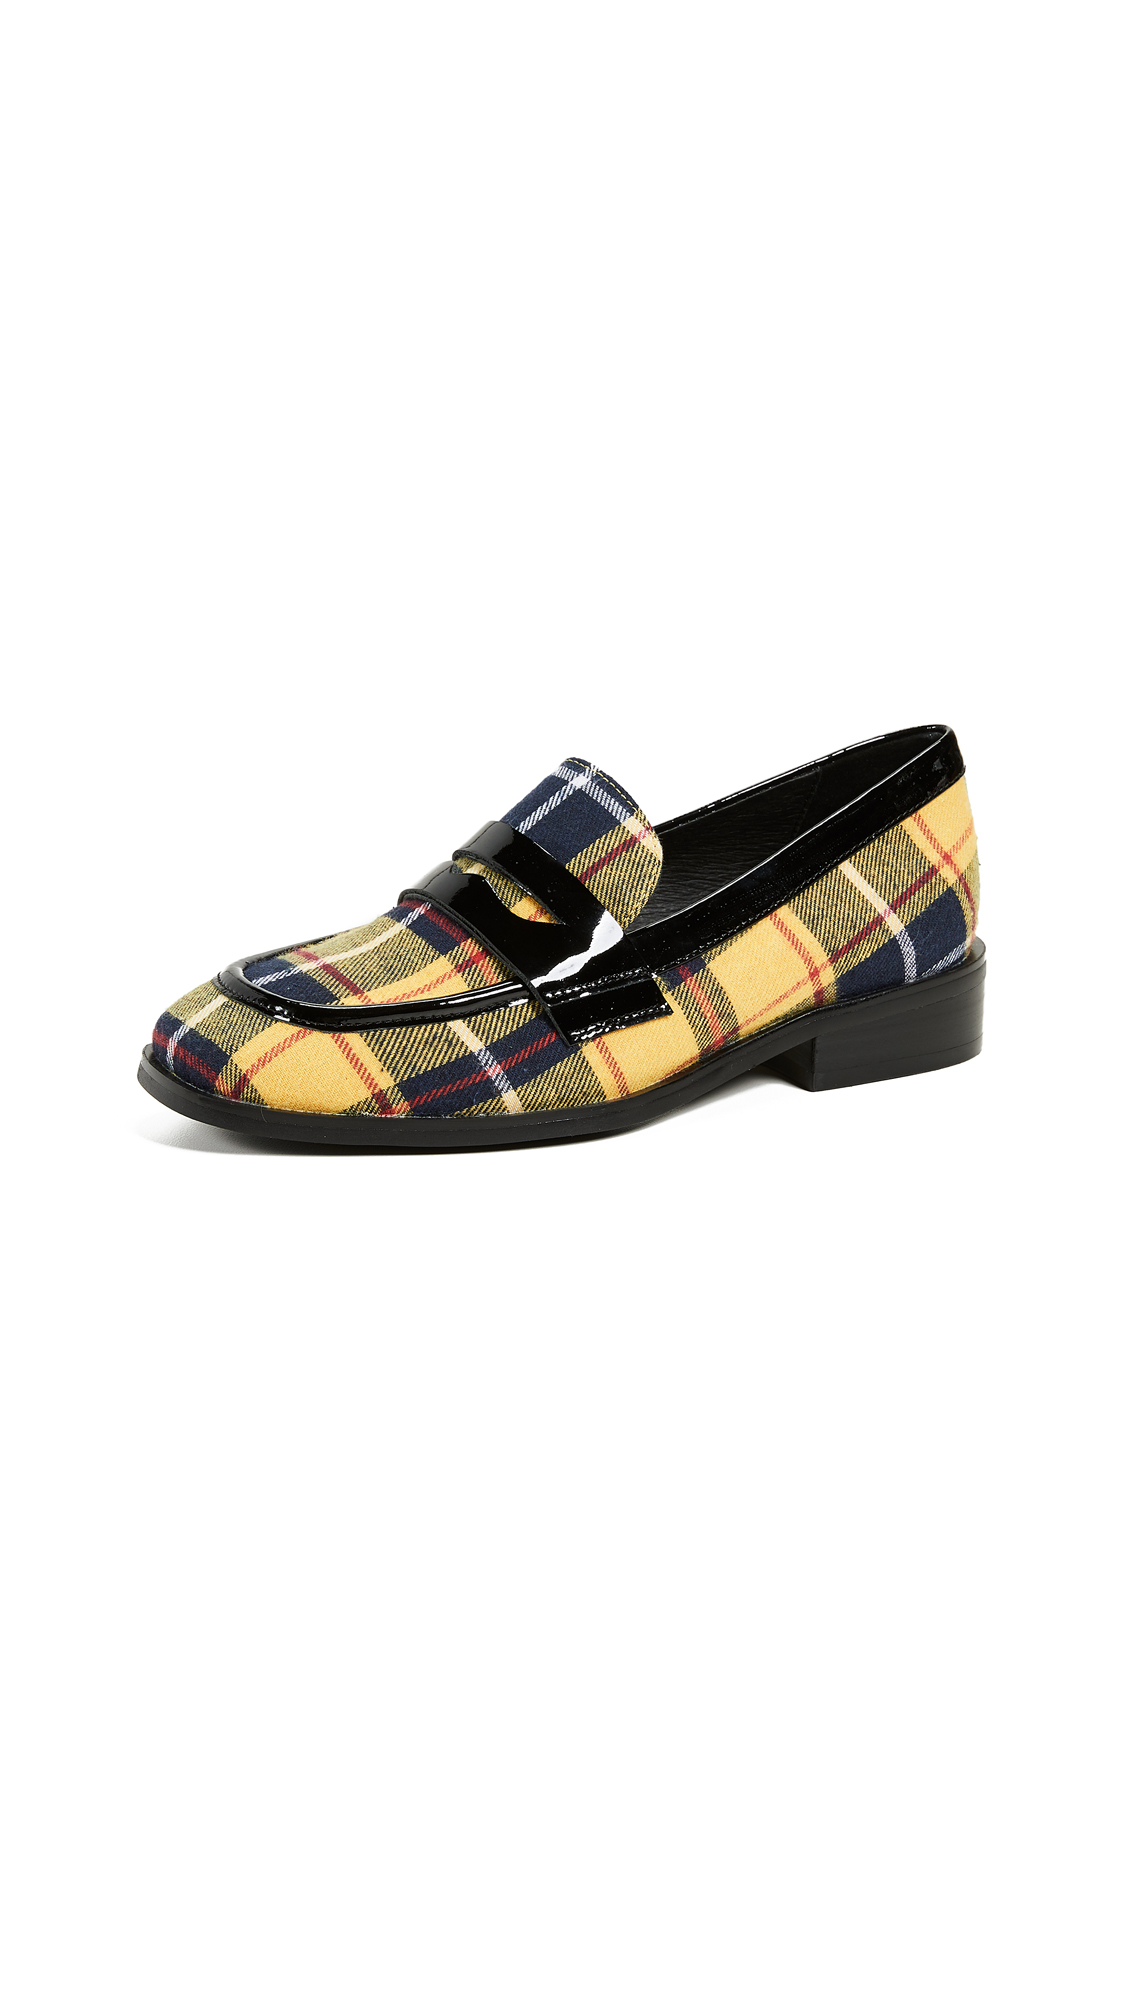 Jeffrey Campbell Hornsby Plaid Loafers - Yellow/Plaid